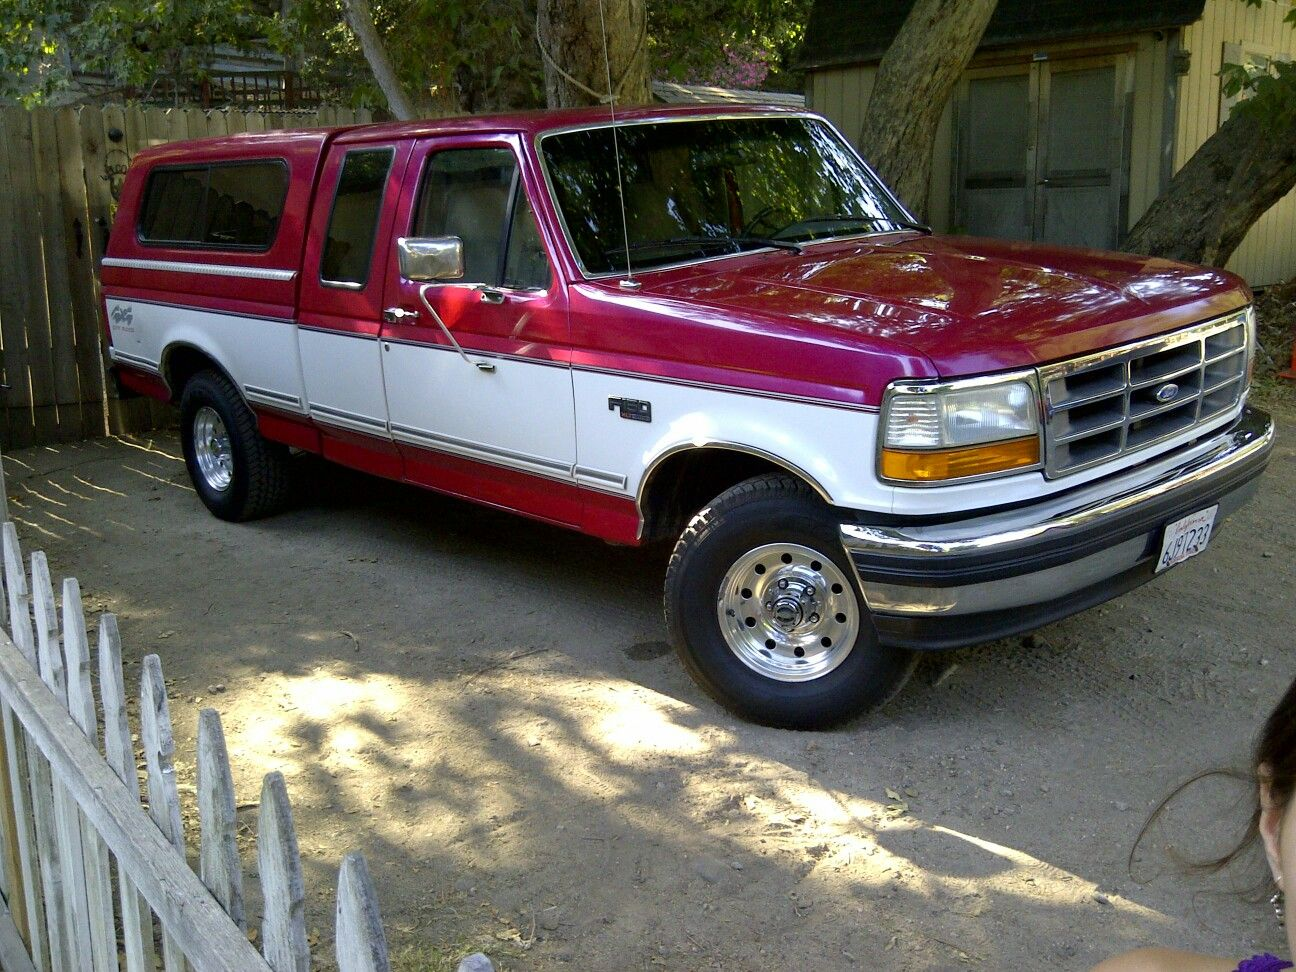 1995 Ford F150 4x4 (With images) Ford trucks, 1995 ford